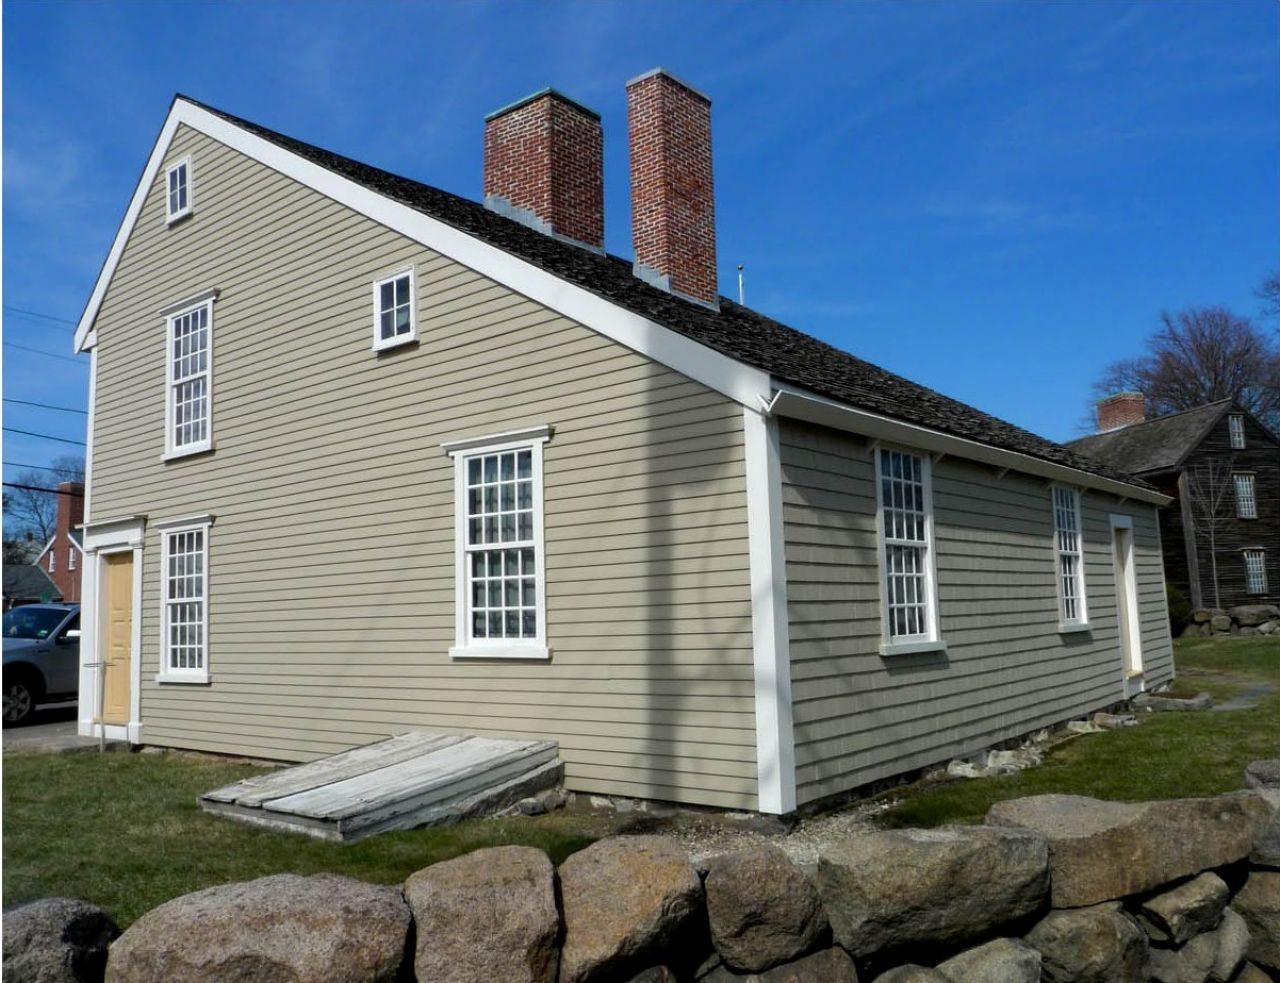 Image Result For Saltbox Roof Styles Saltbox Houses